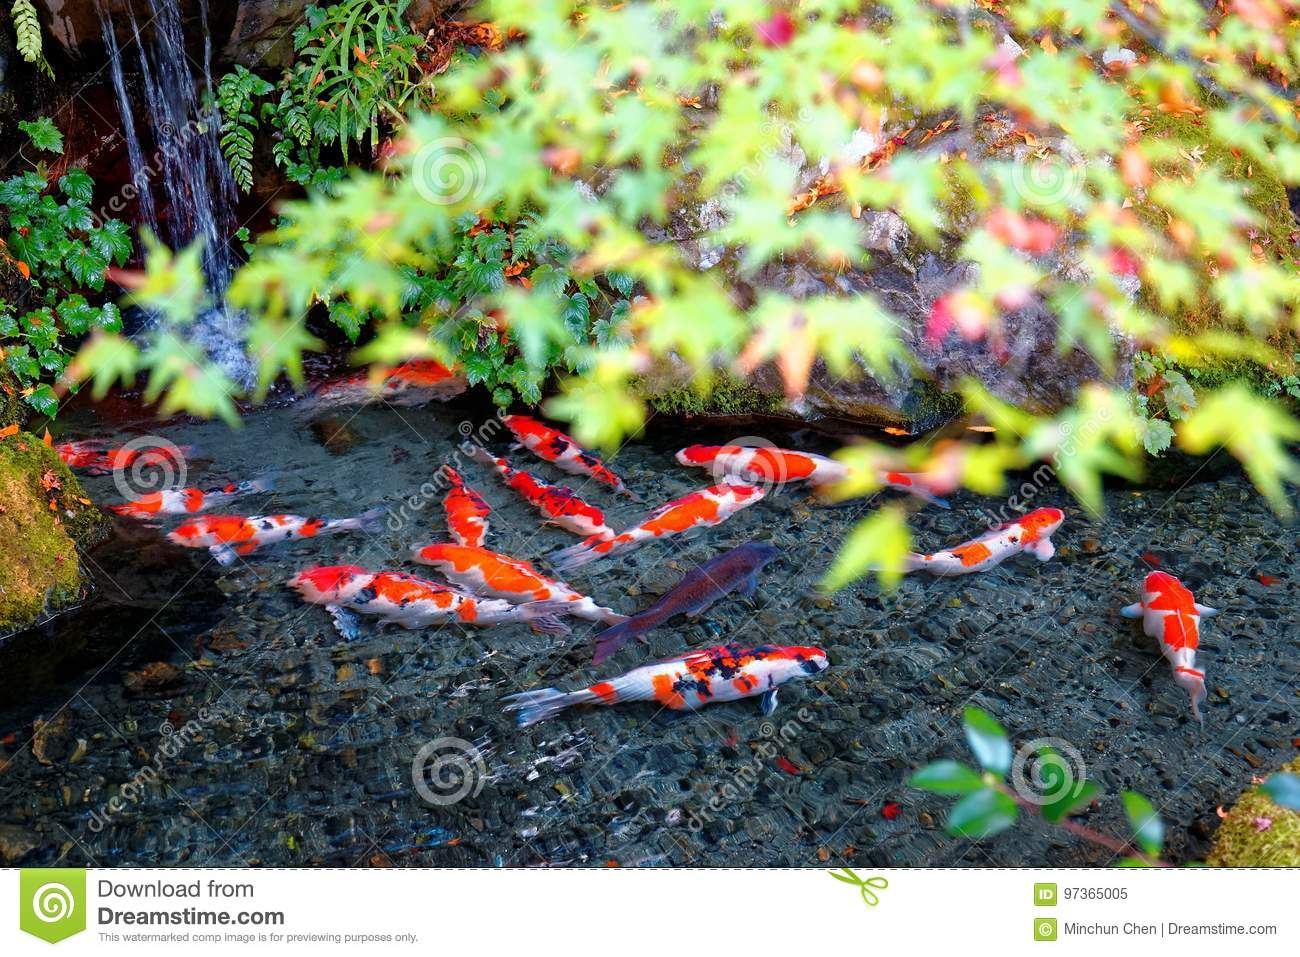 A Beautiful View Of Japanese Koi Carp Fish In A Lovely Pond ...